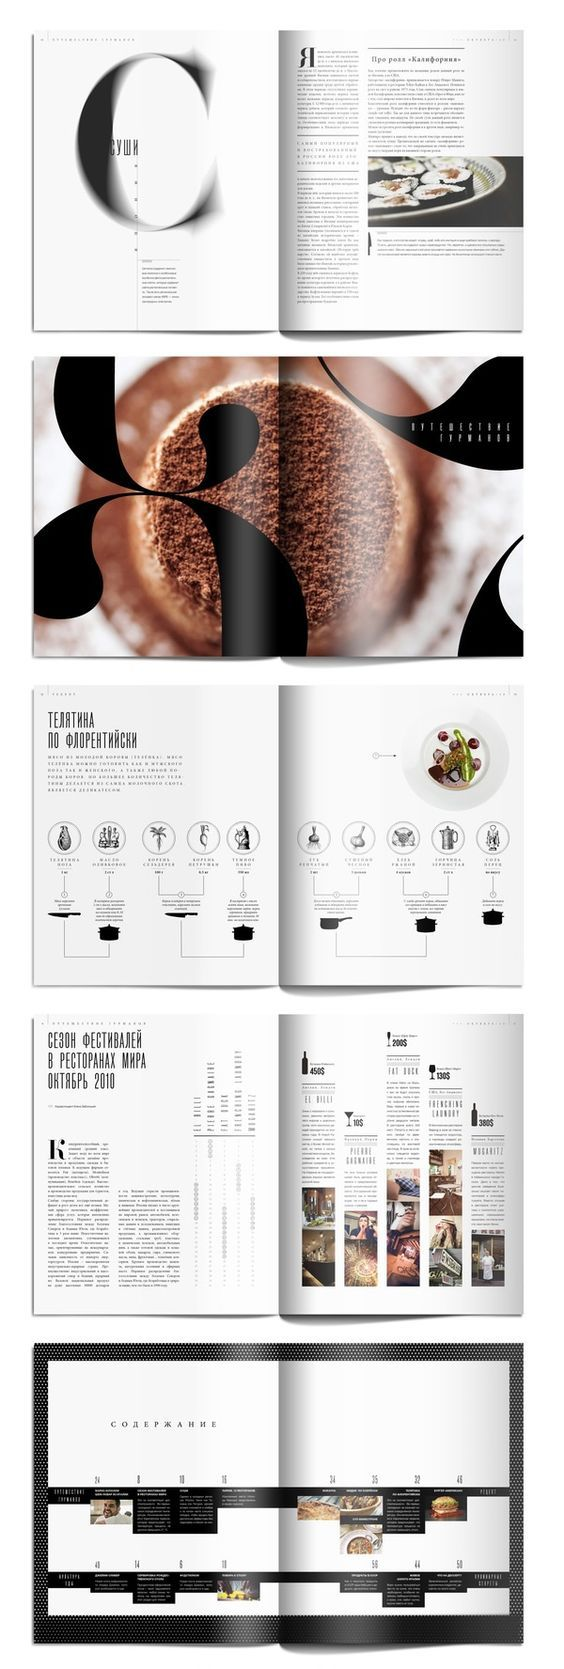 Food Magazine // Food & Editorial Design? Best of both worlds...: